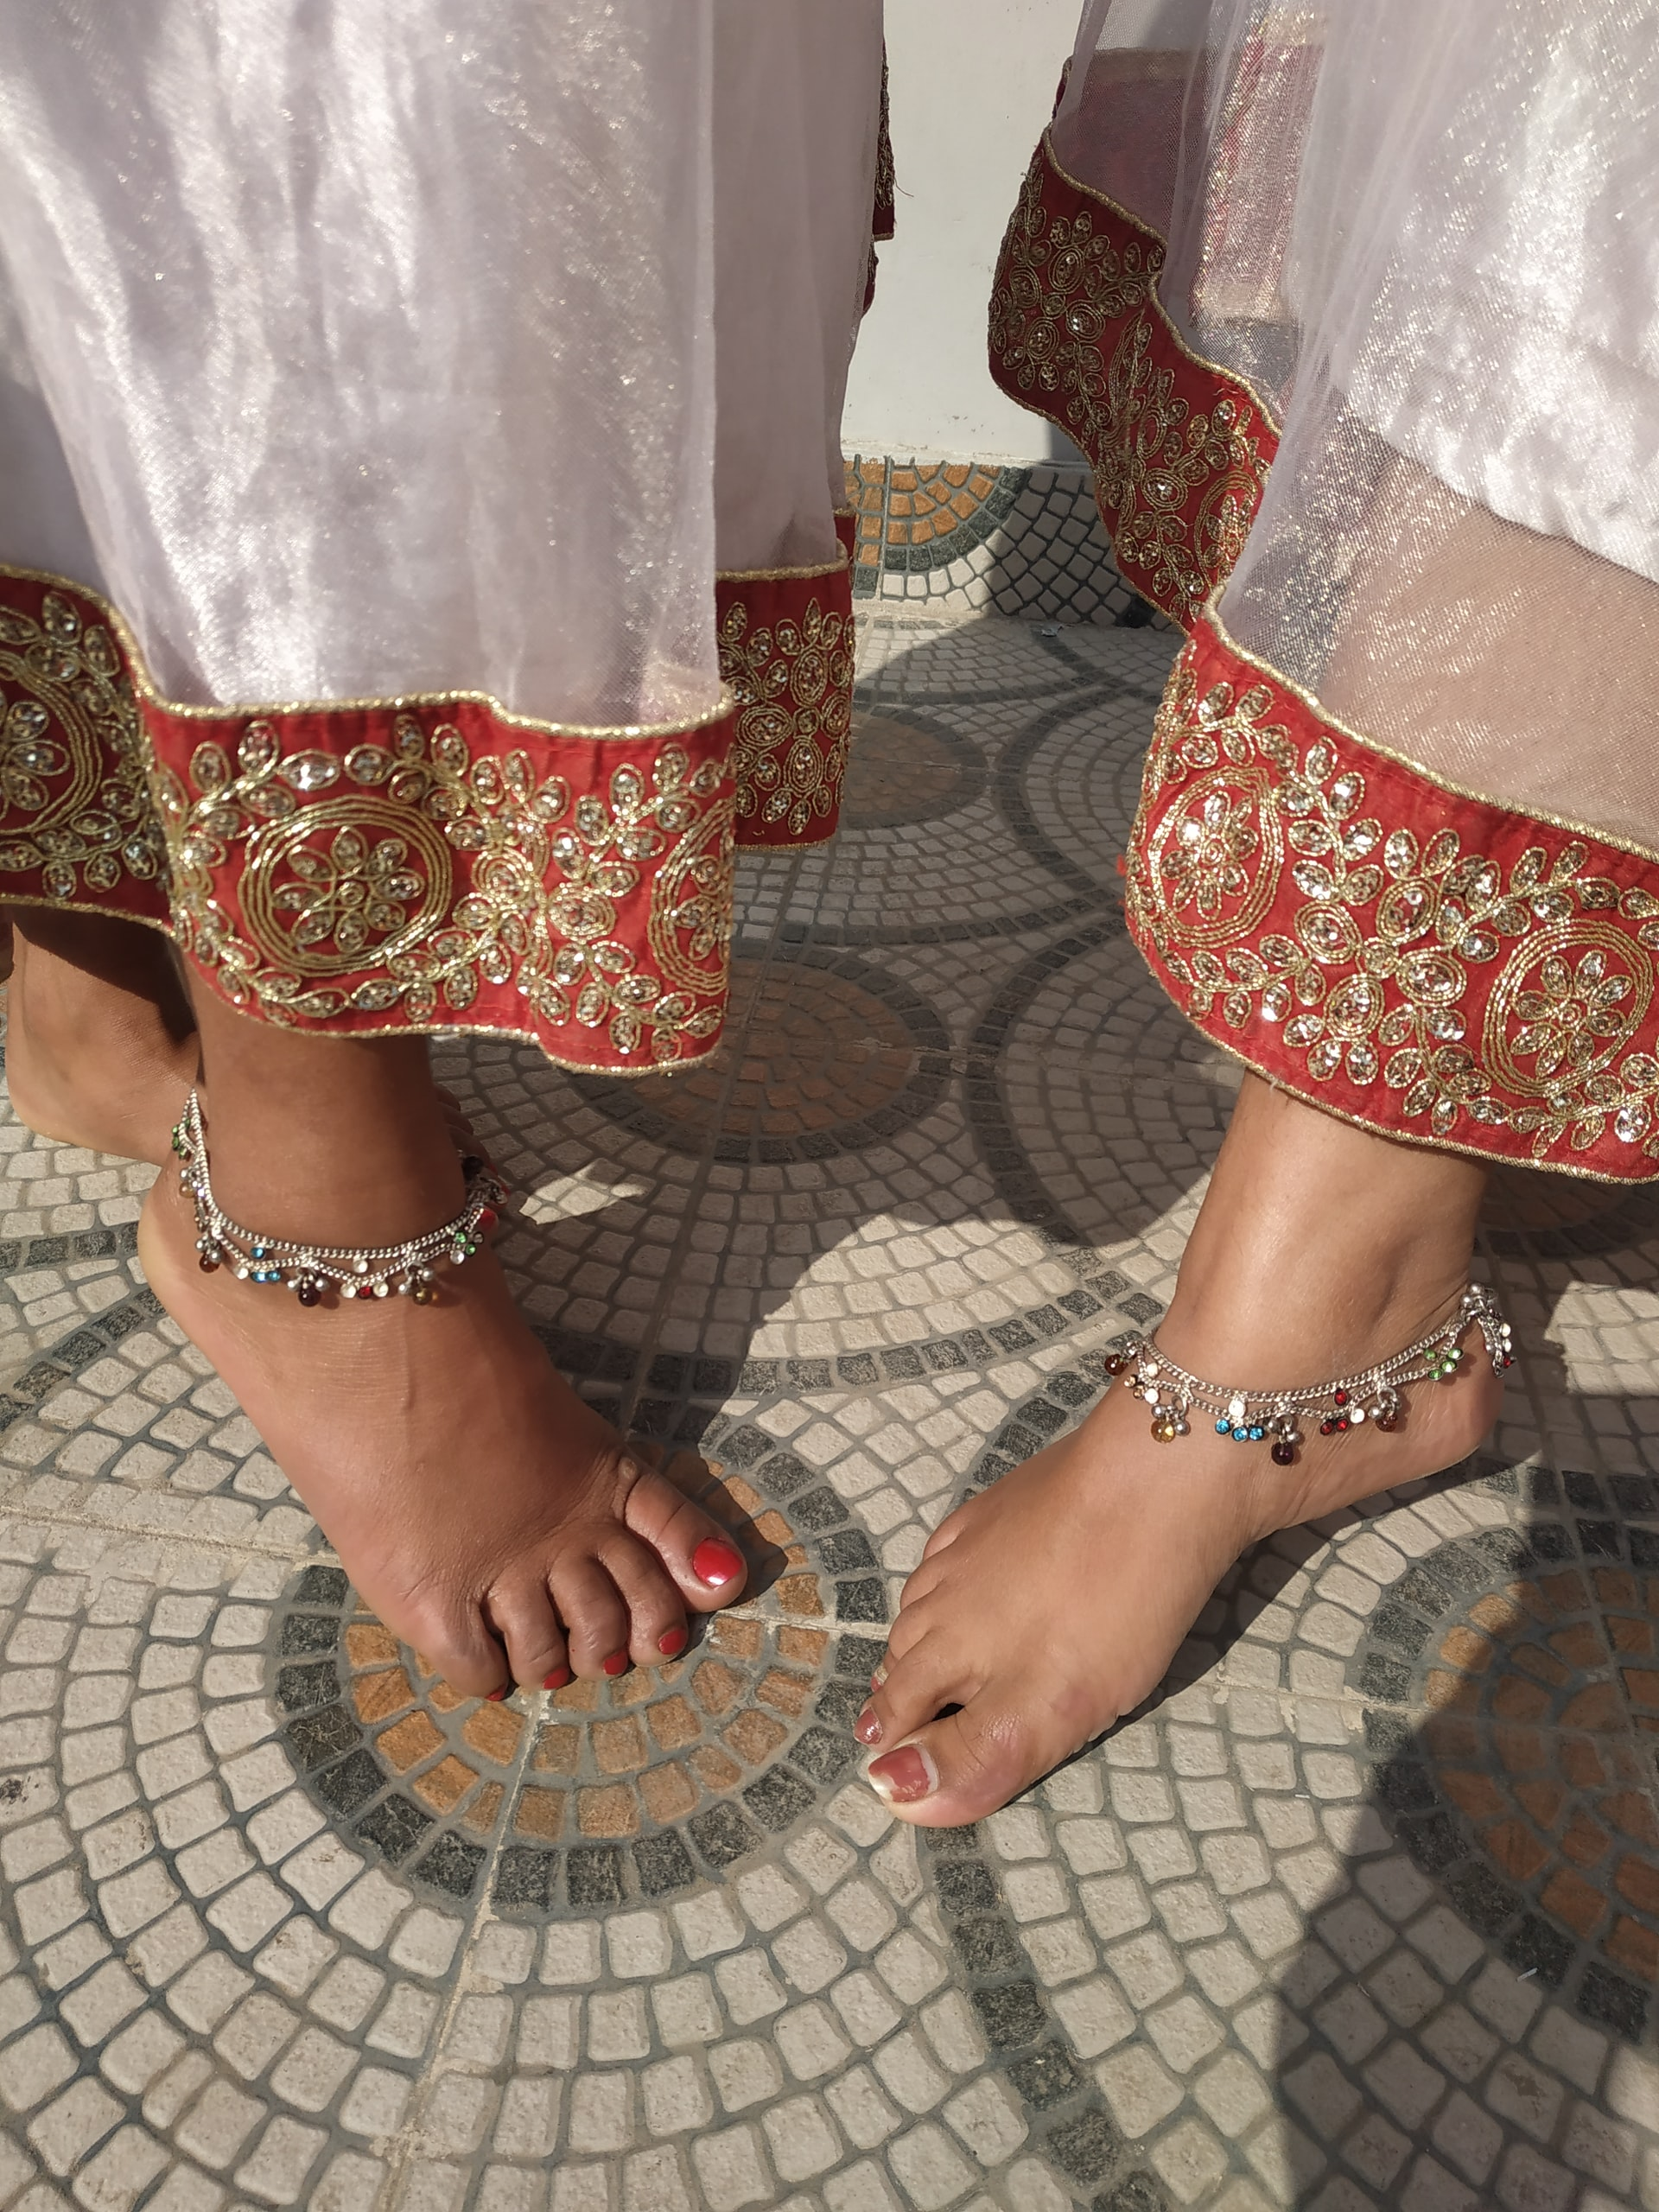 Meaning Behind Anklets Article Image